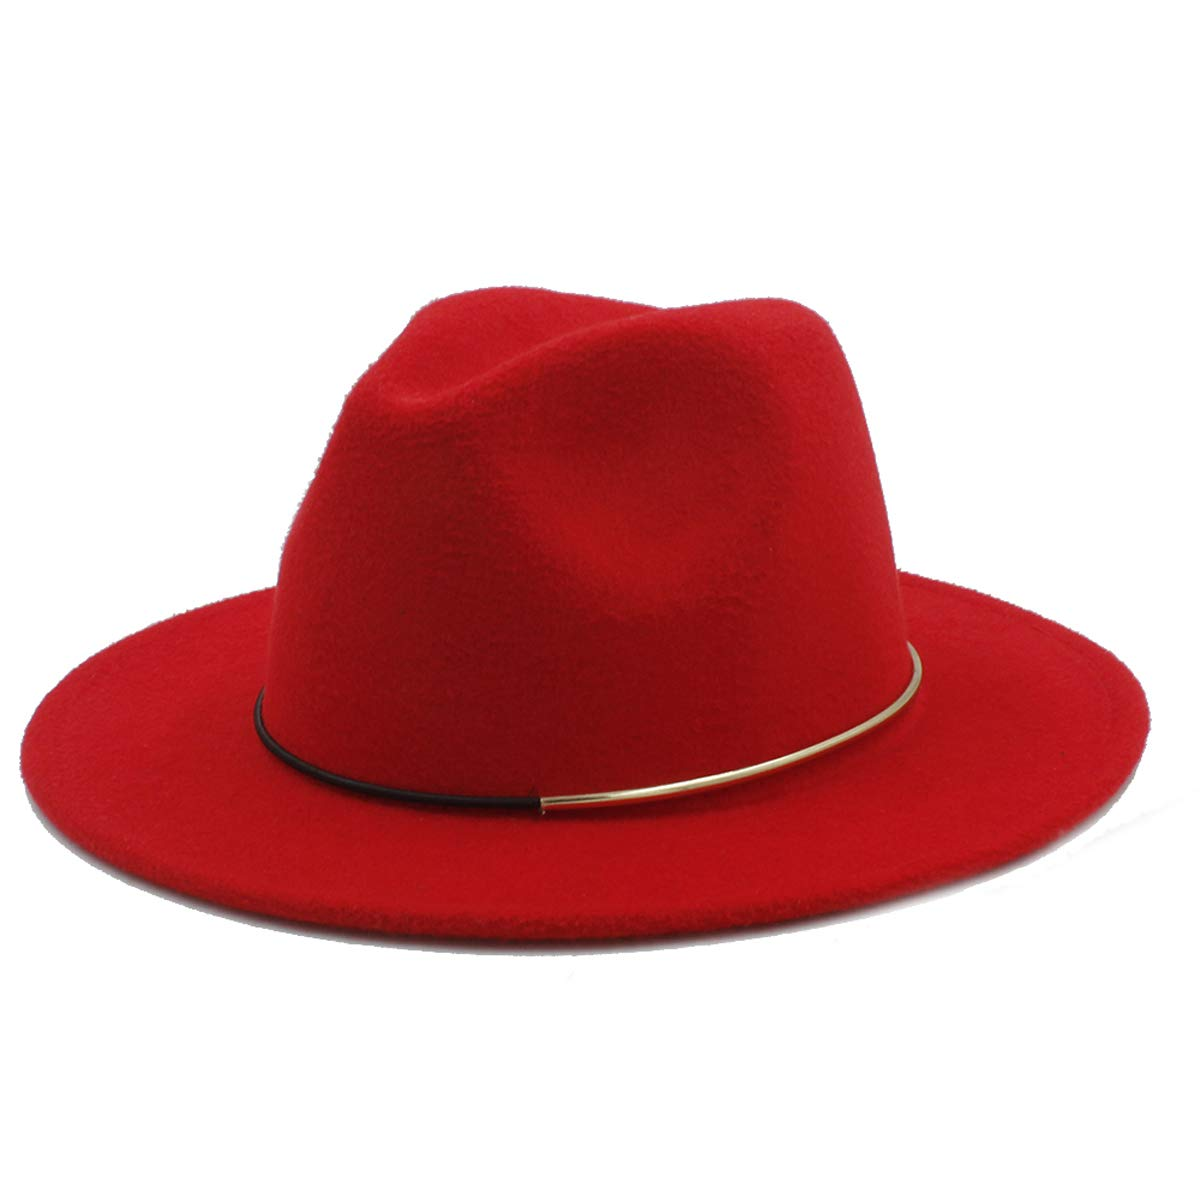 kemeiChina Wool Fedora Hats for Women Men for Winter Wide Brim Jazz caps